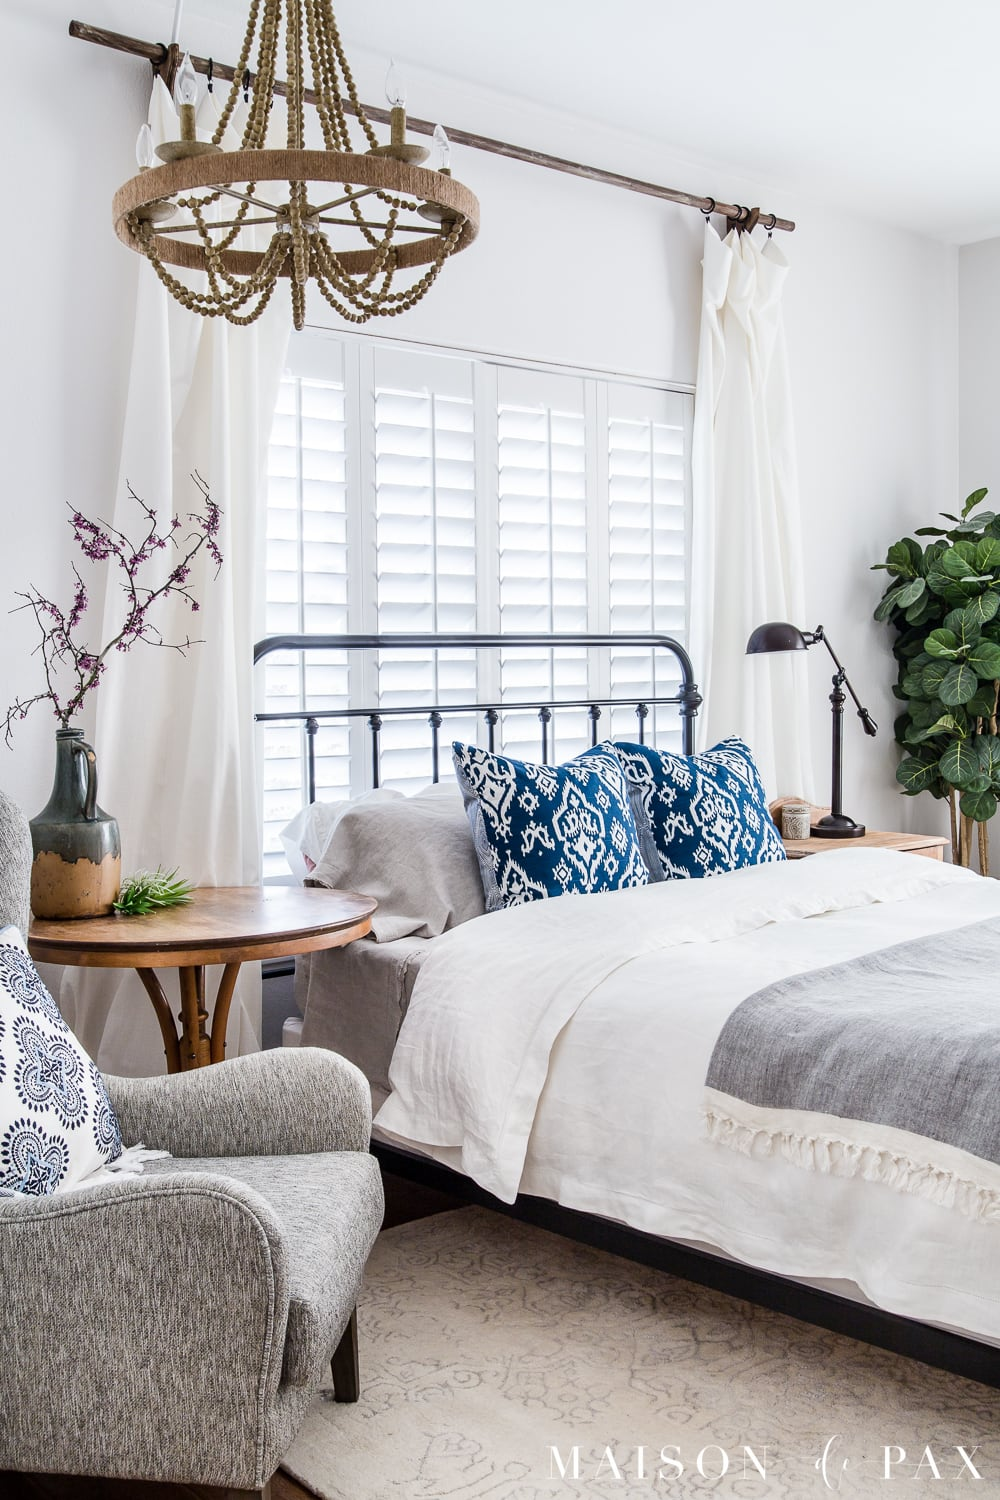 Looking to add a seasonal touch to your bedroom?  Don't miss these incredibly simple master bedroom decorating ideas for spring! #springdecor #springbedroom #nightstand #modernfarmhouse